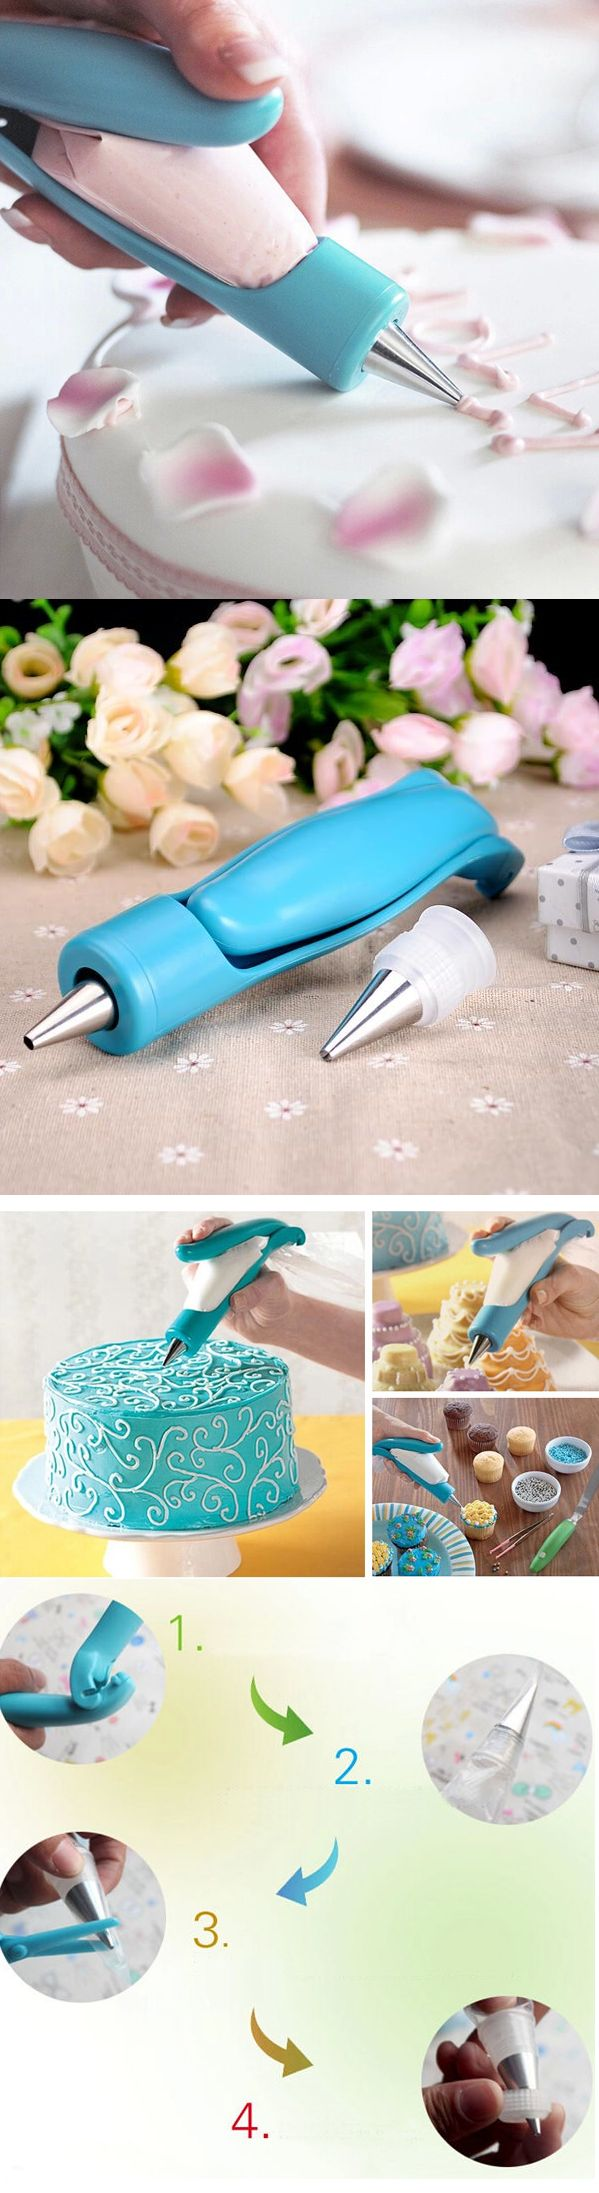 US$5.88 E-Z Deco Icing Pen Nozzle Manual Crowded Cream Cake Piping